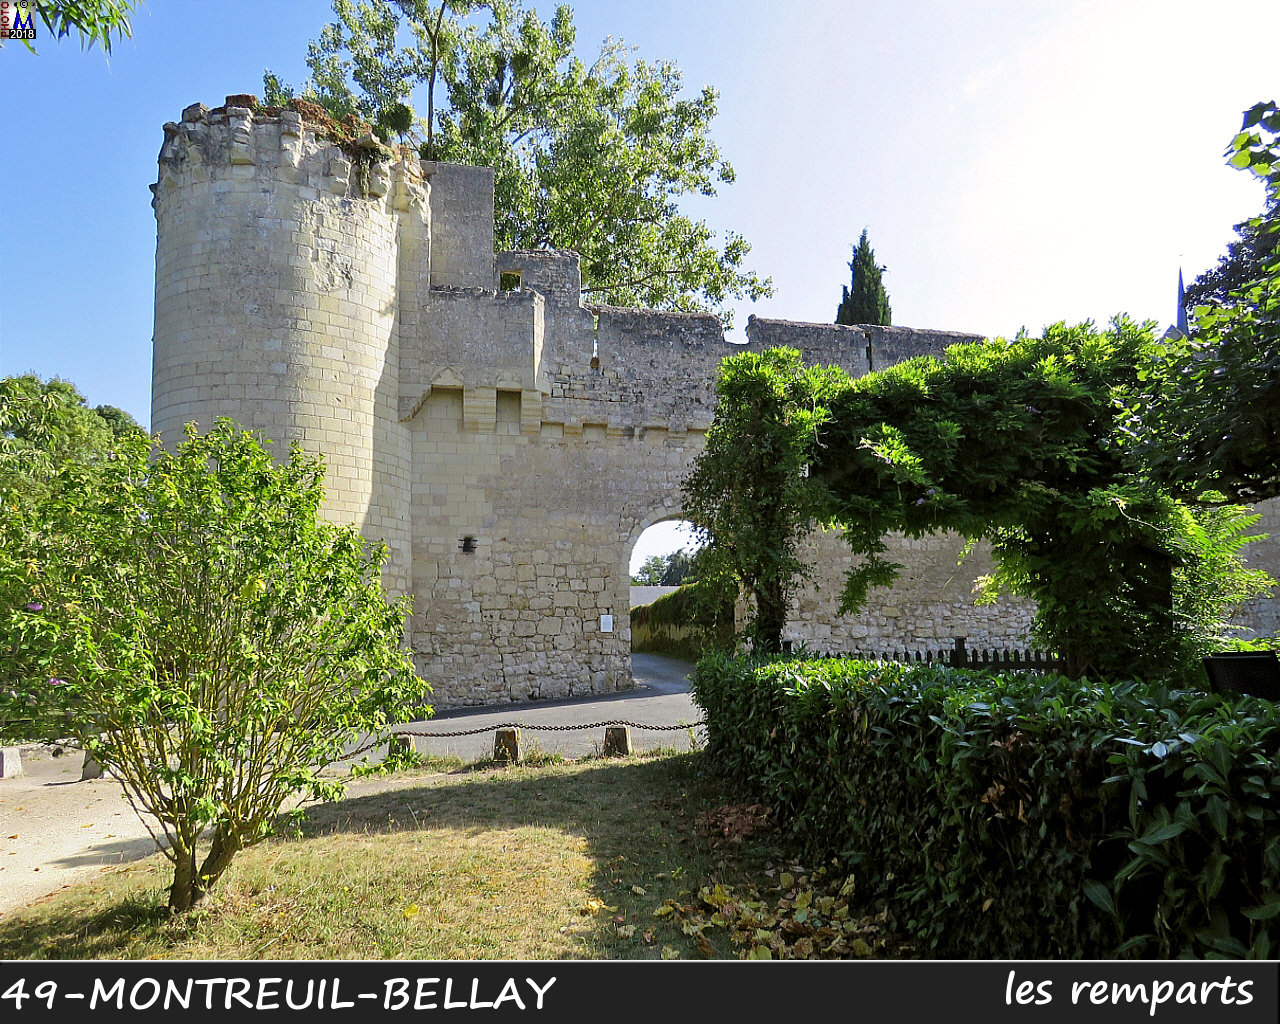 49MONTREUIL-BELLAY_remparts_1026.jpg